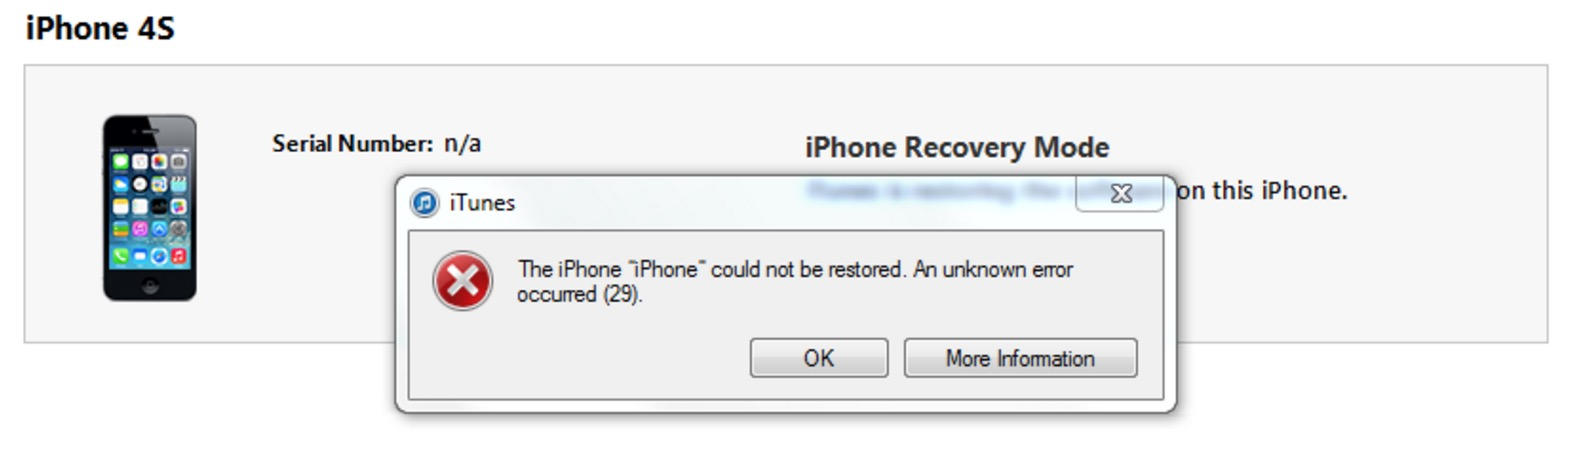 iphone4s-error-29